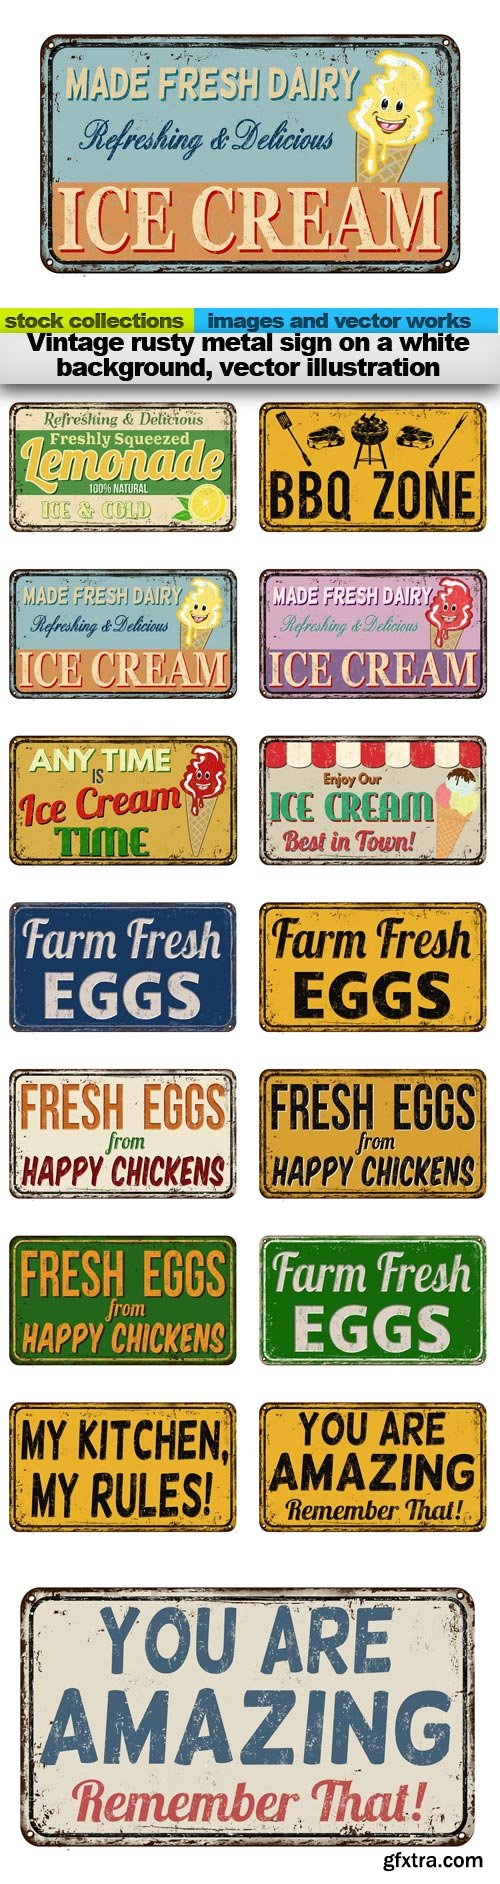 Vintage rusty metal sign on a white background, vector illustration, 15 x EPS